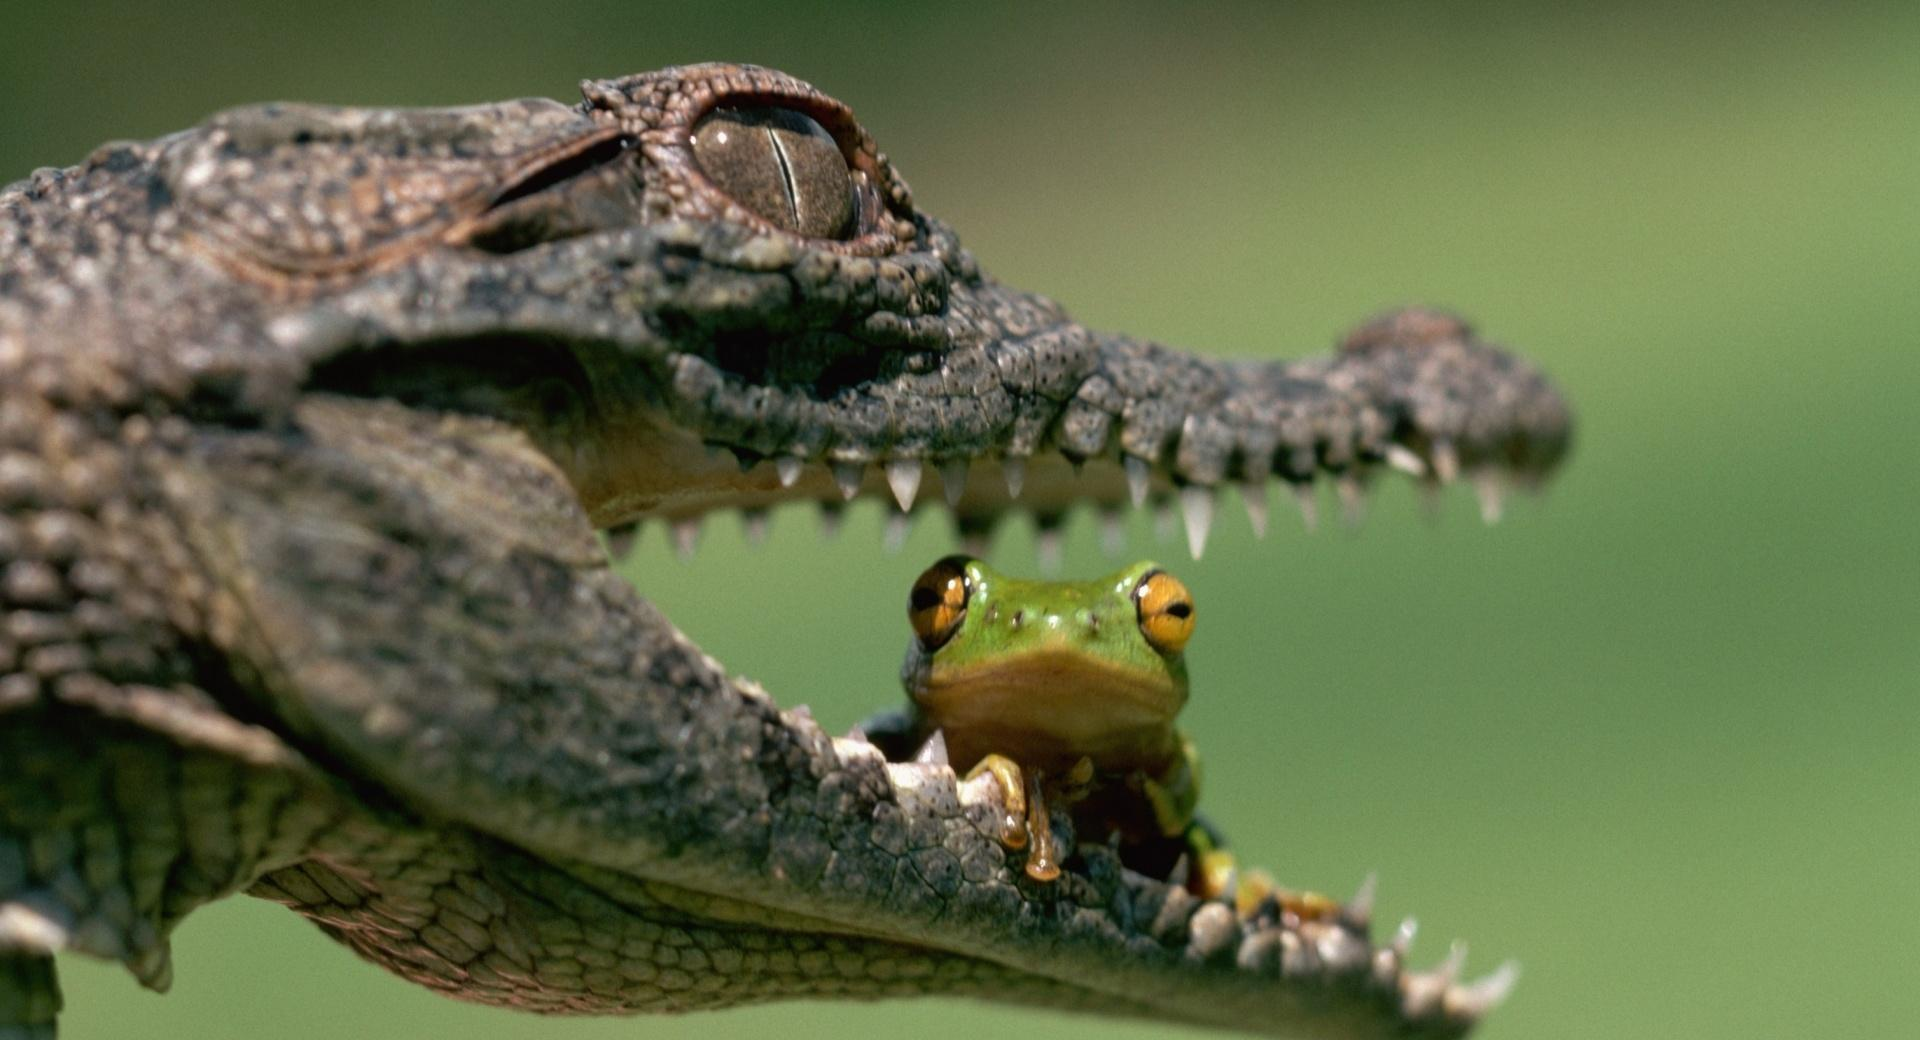 Crocodile Eating Frog at 1600 x 1200 size wallpapers HD quality